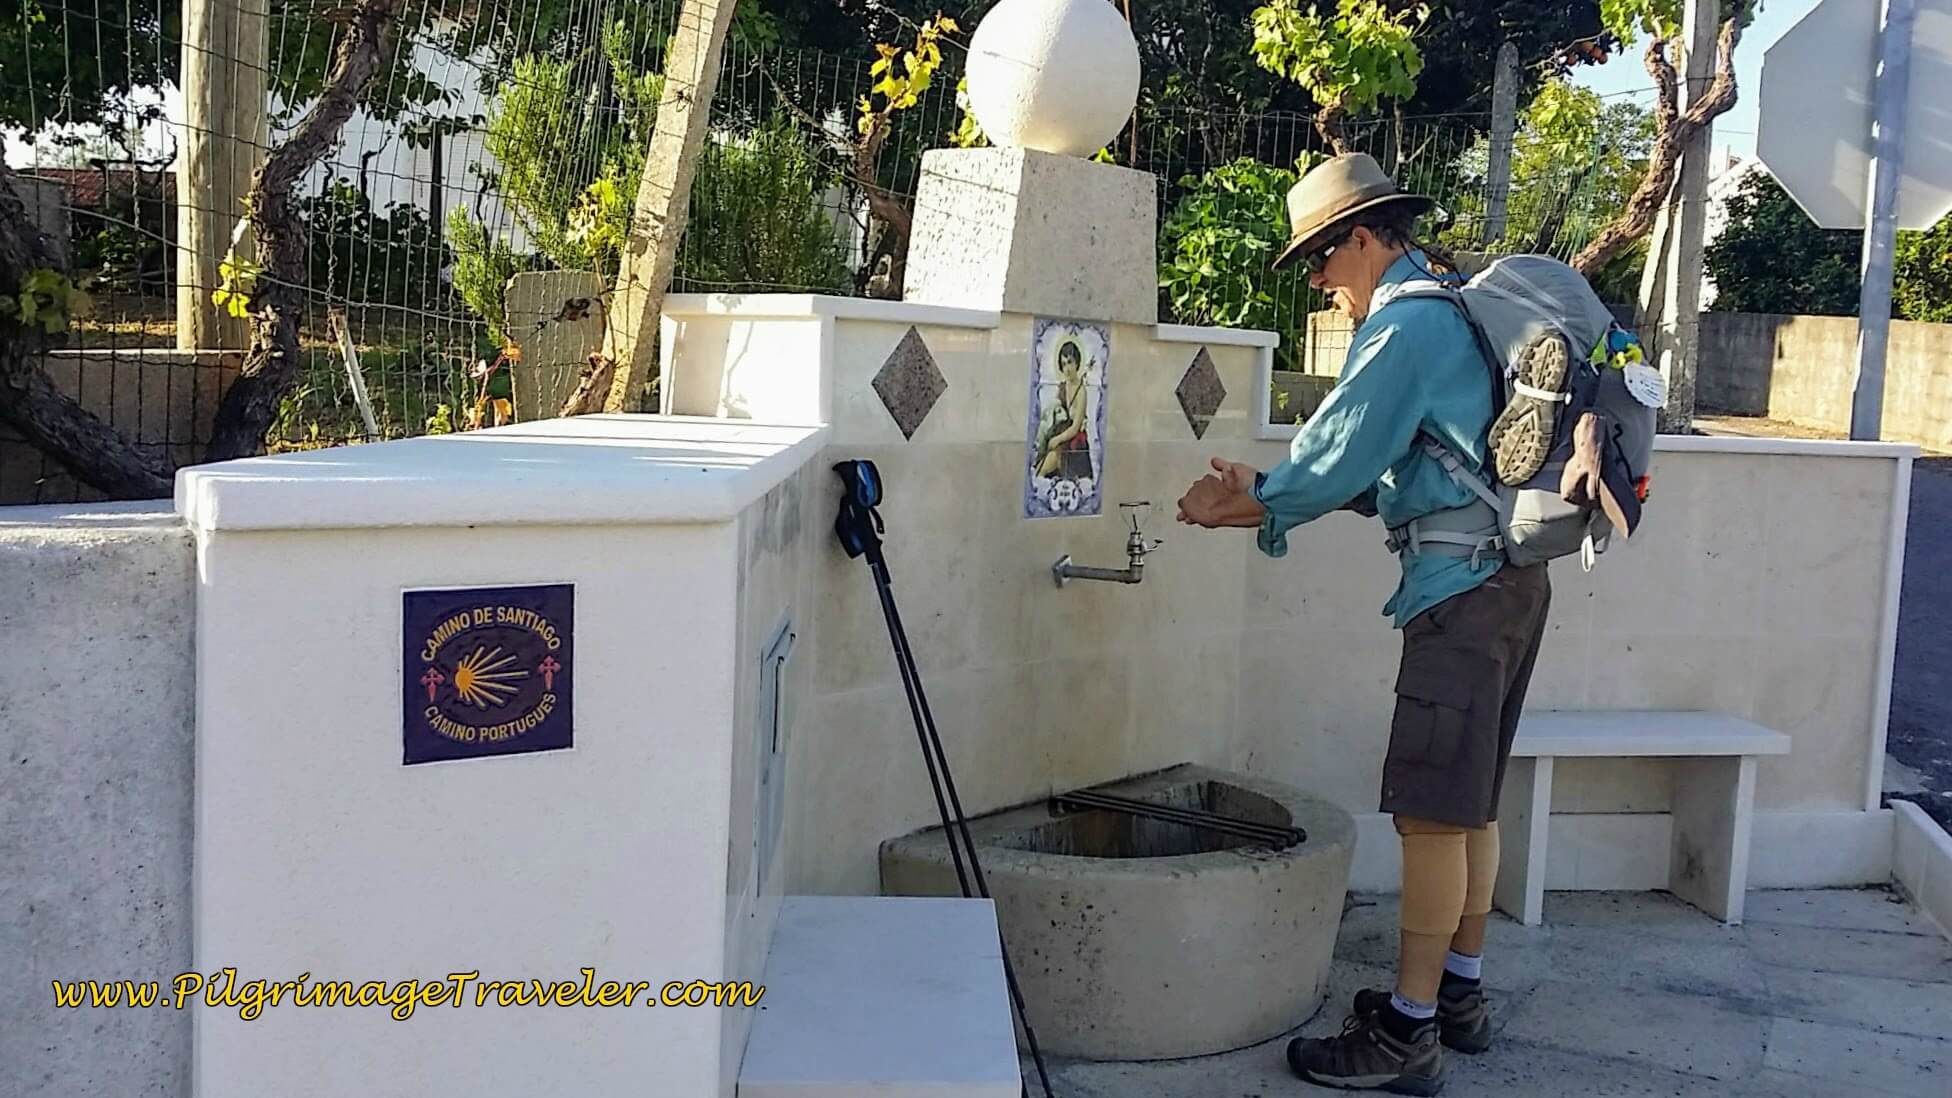 Community Fountain in Casais, on the Portuguese Camino